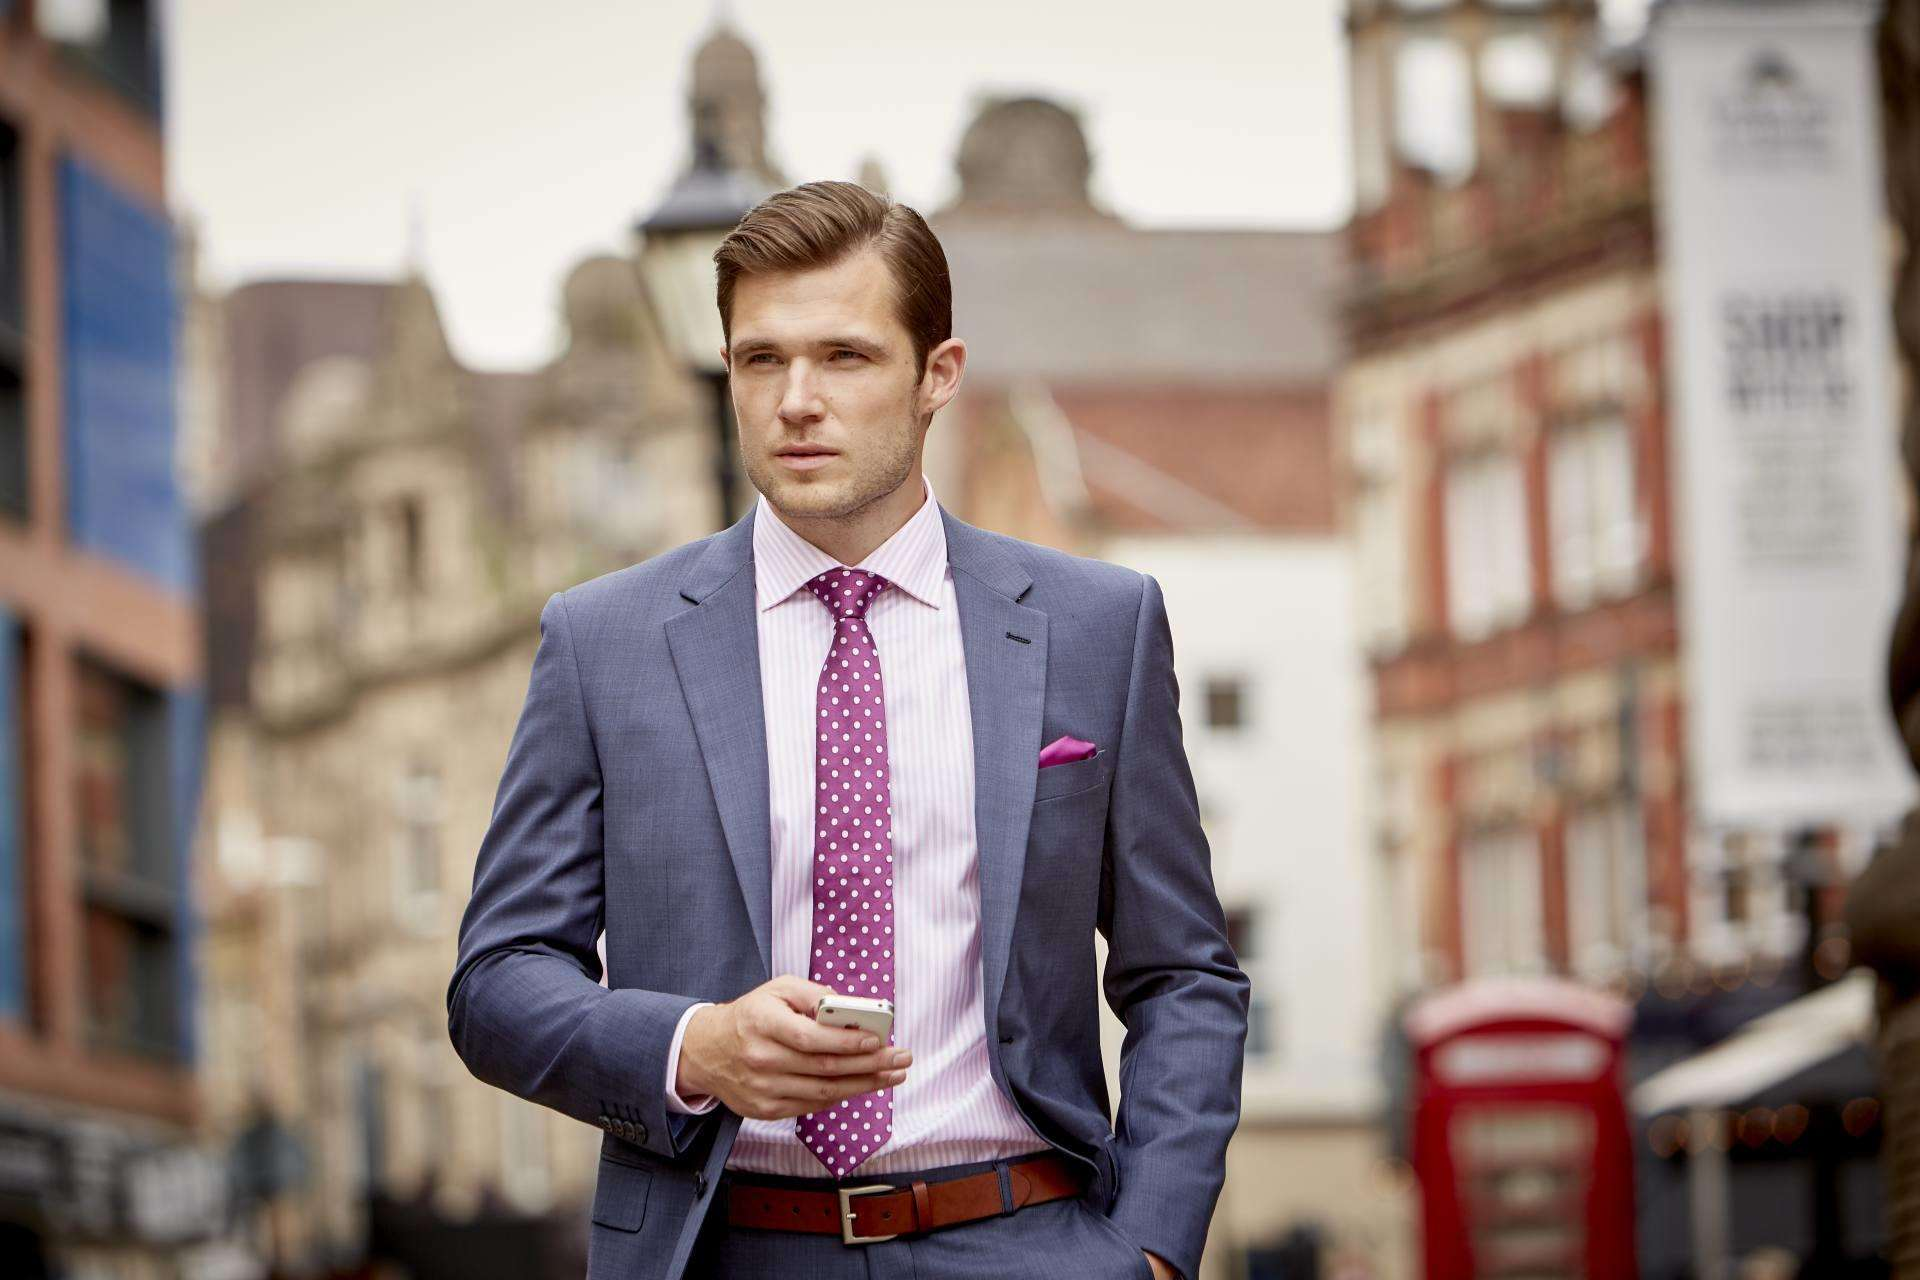 How to Look Sharp on the Train as a Working Dad PLUS Win an iPad with House of Fraser, Palmer Blue349%, lifestyle%